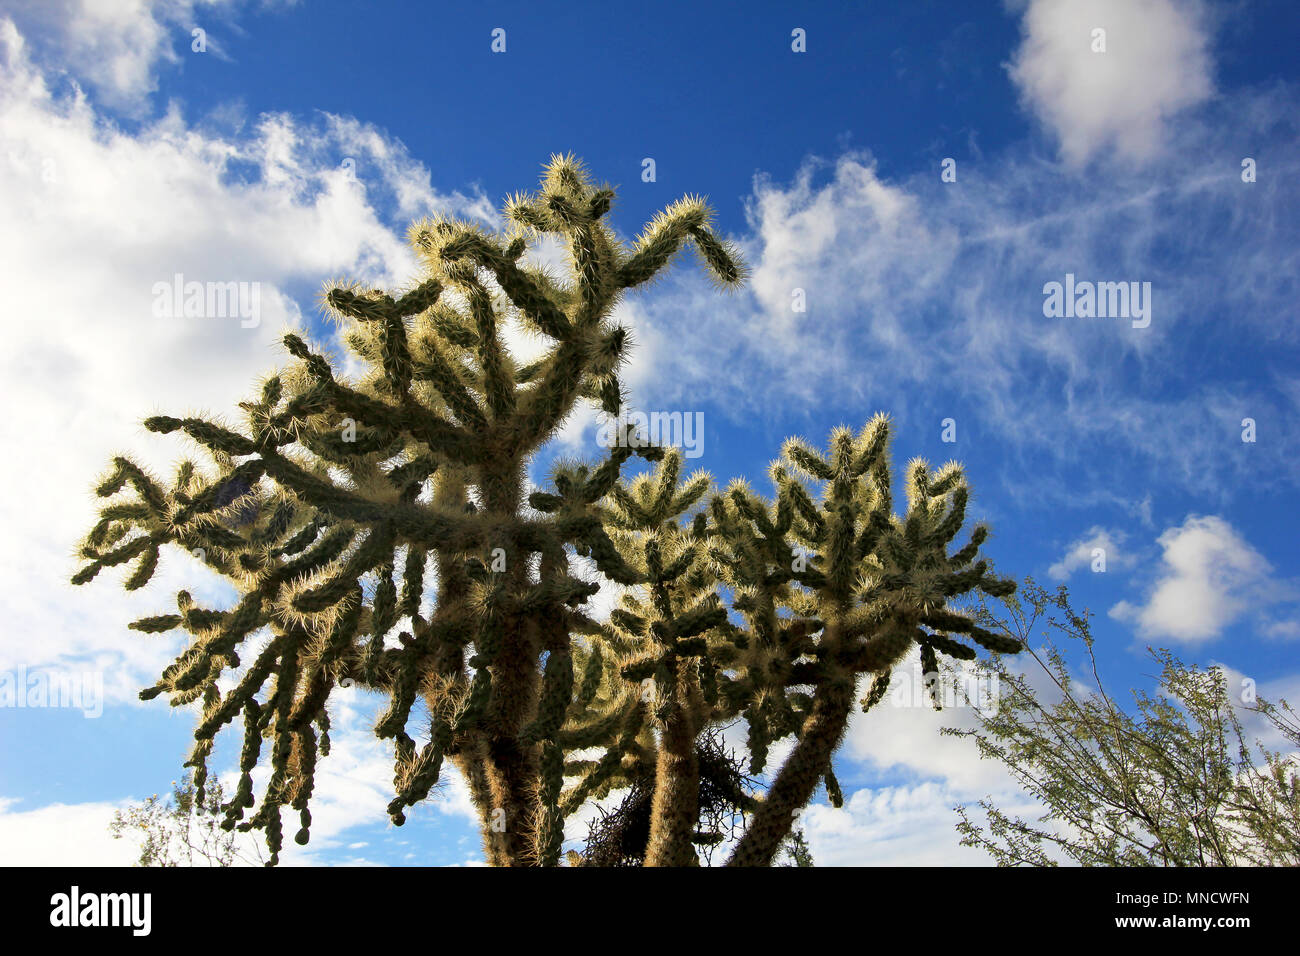 Chain Fruit Cholla cactus in Organ Pipe Cactus National Monument, Arizona, USA - Stock Image